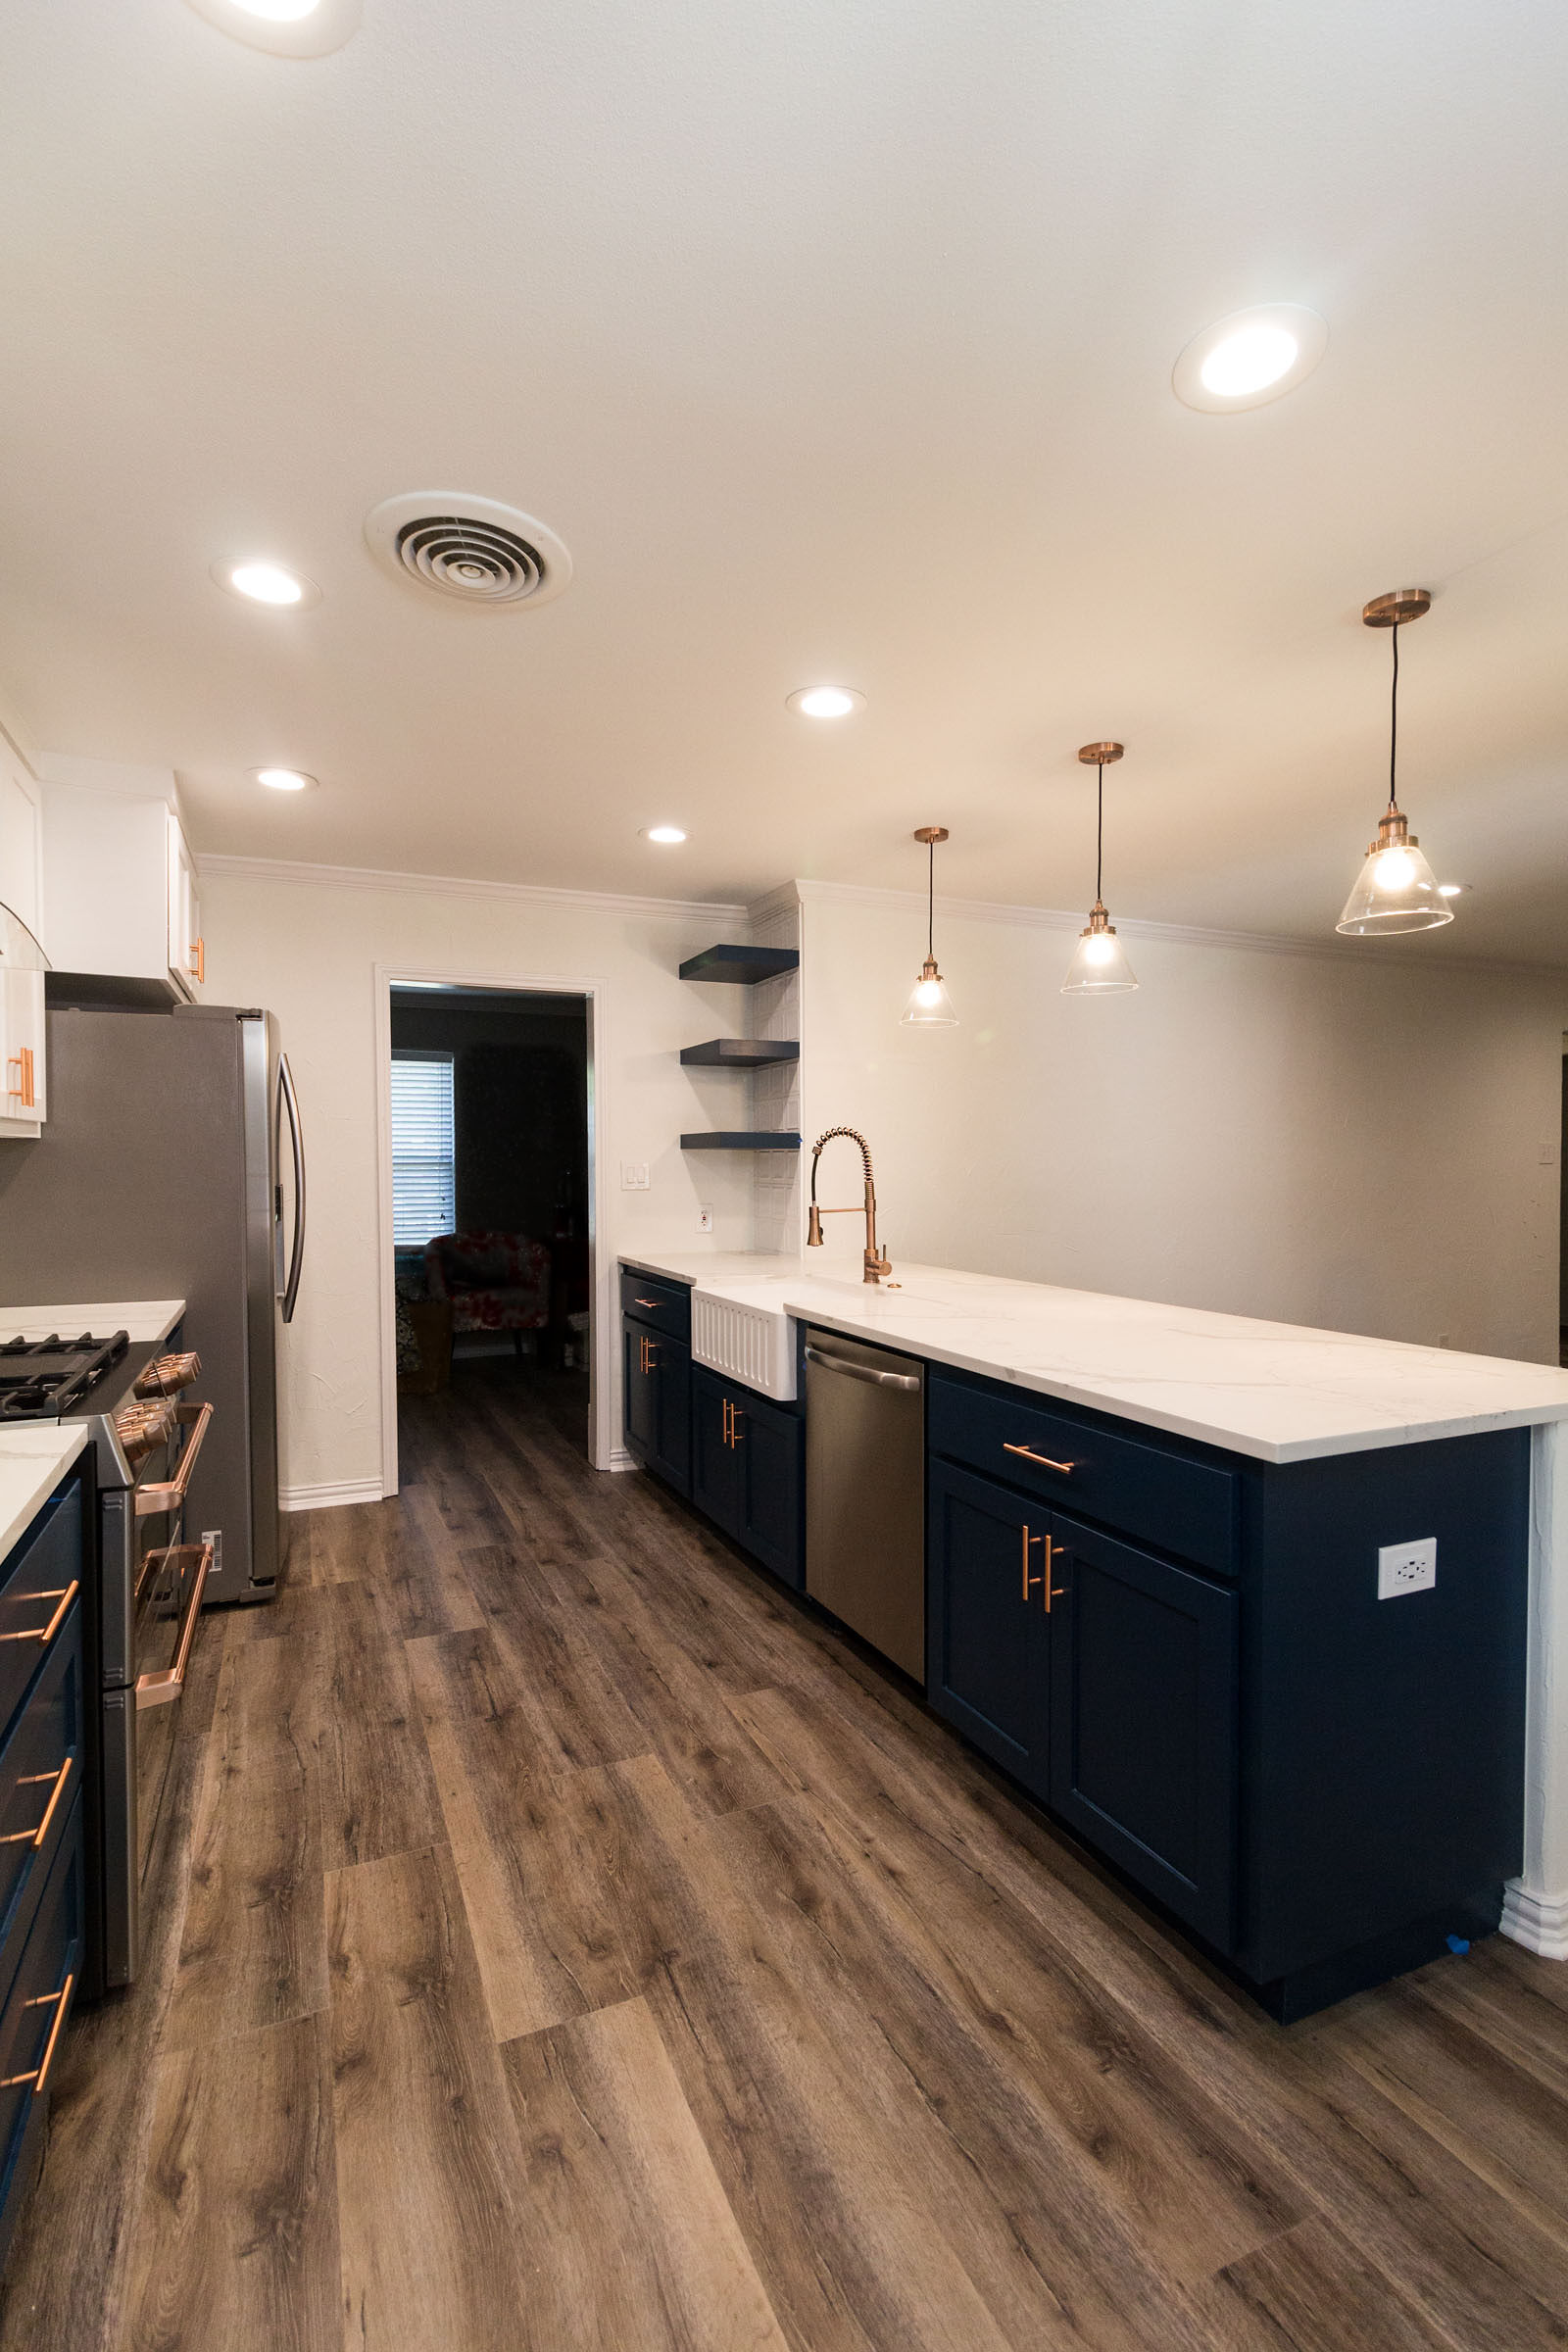 Navy cabinets with copper hardware and white granite